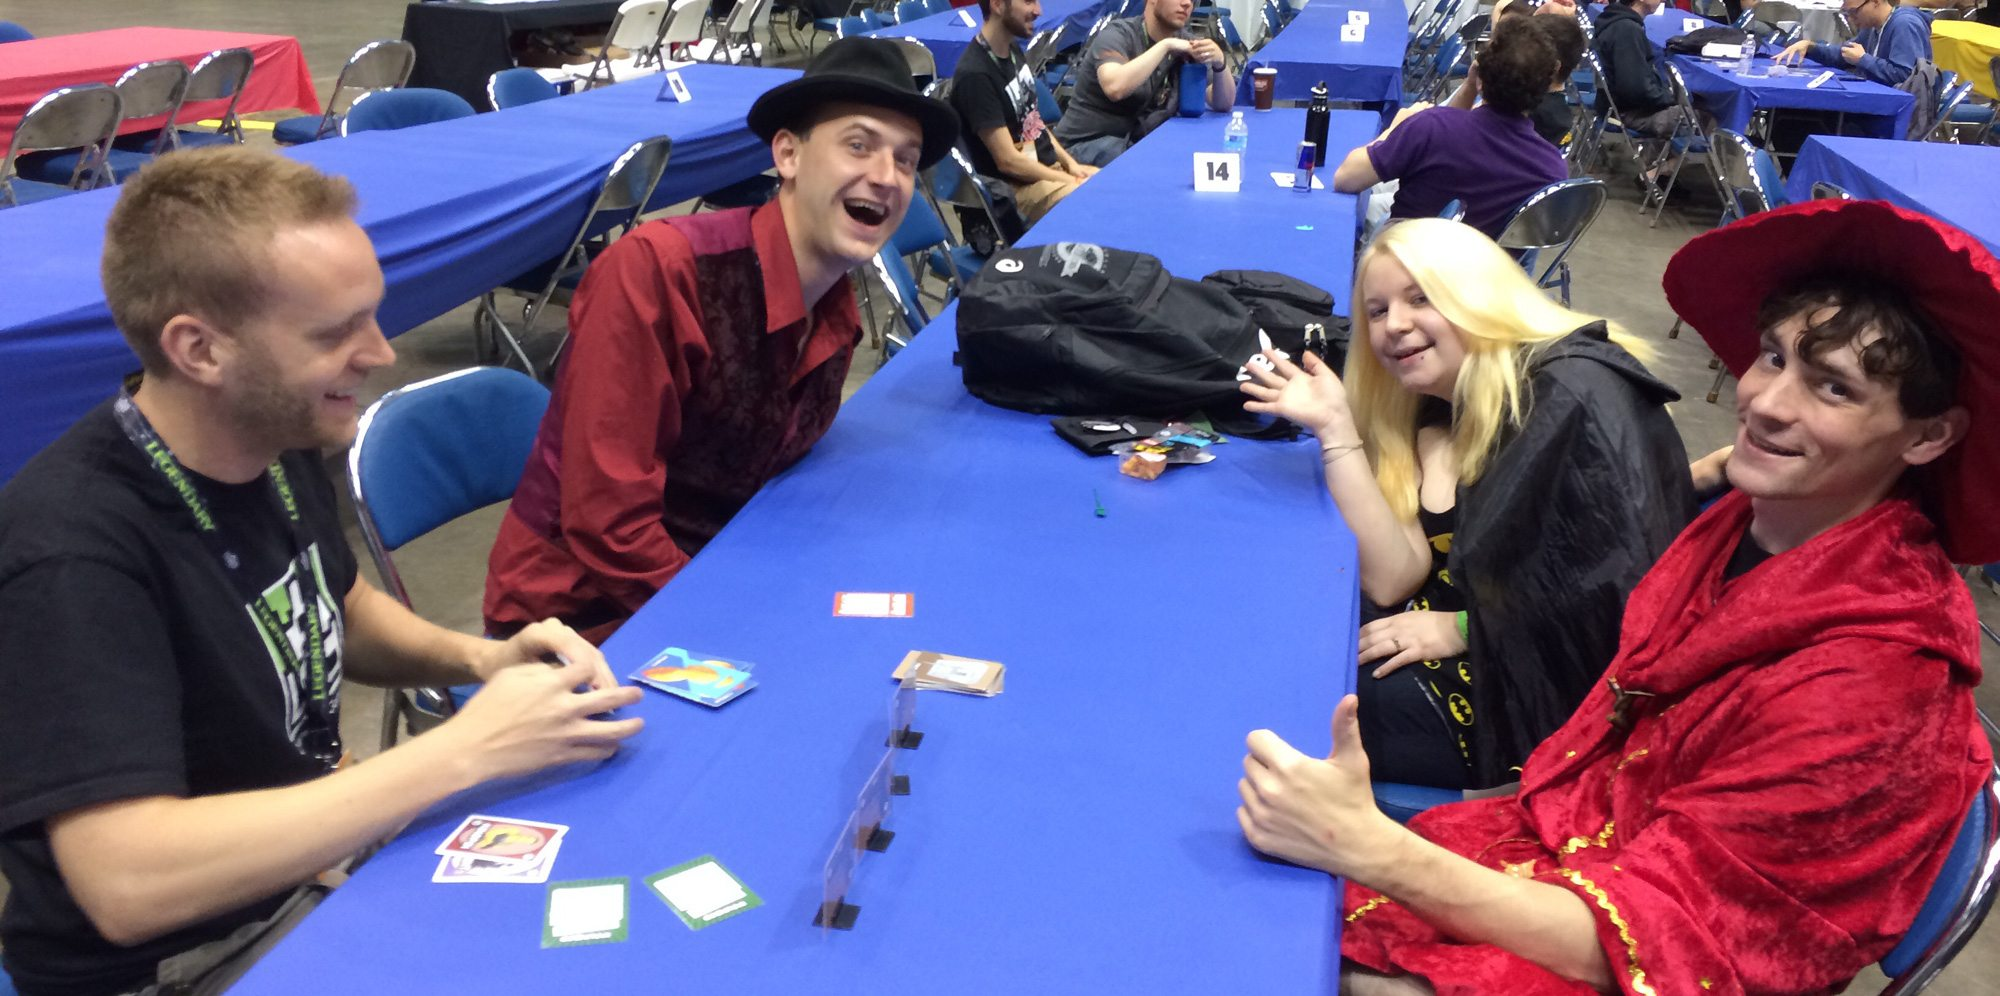 Gaming at Gen Con